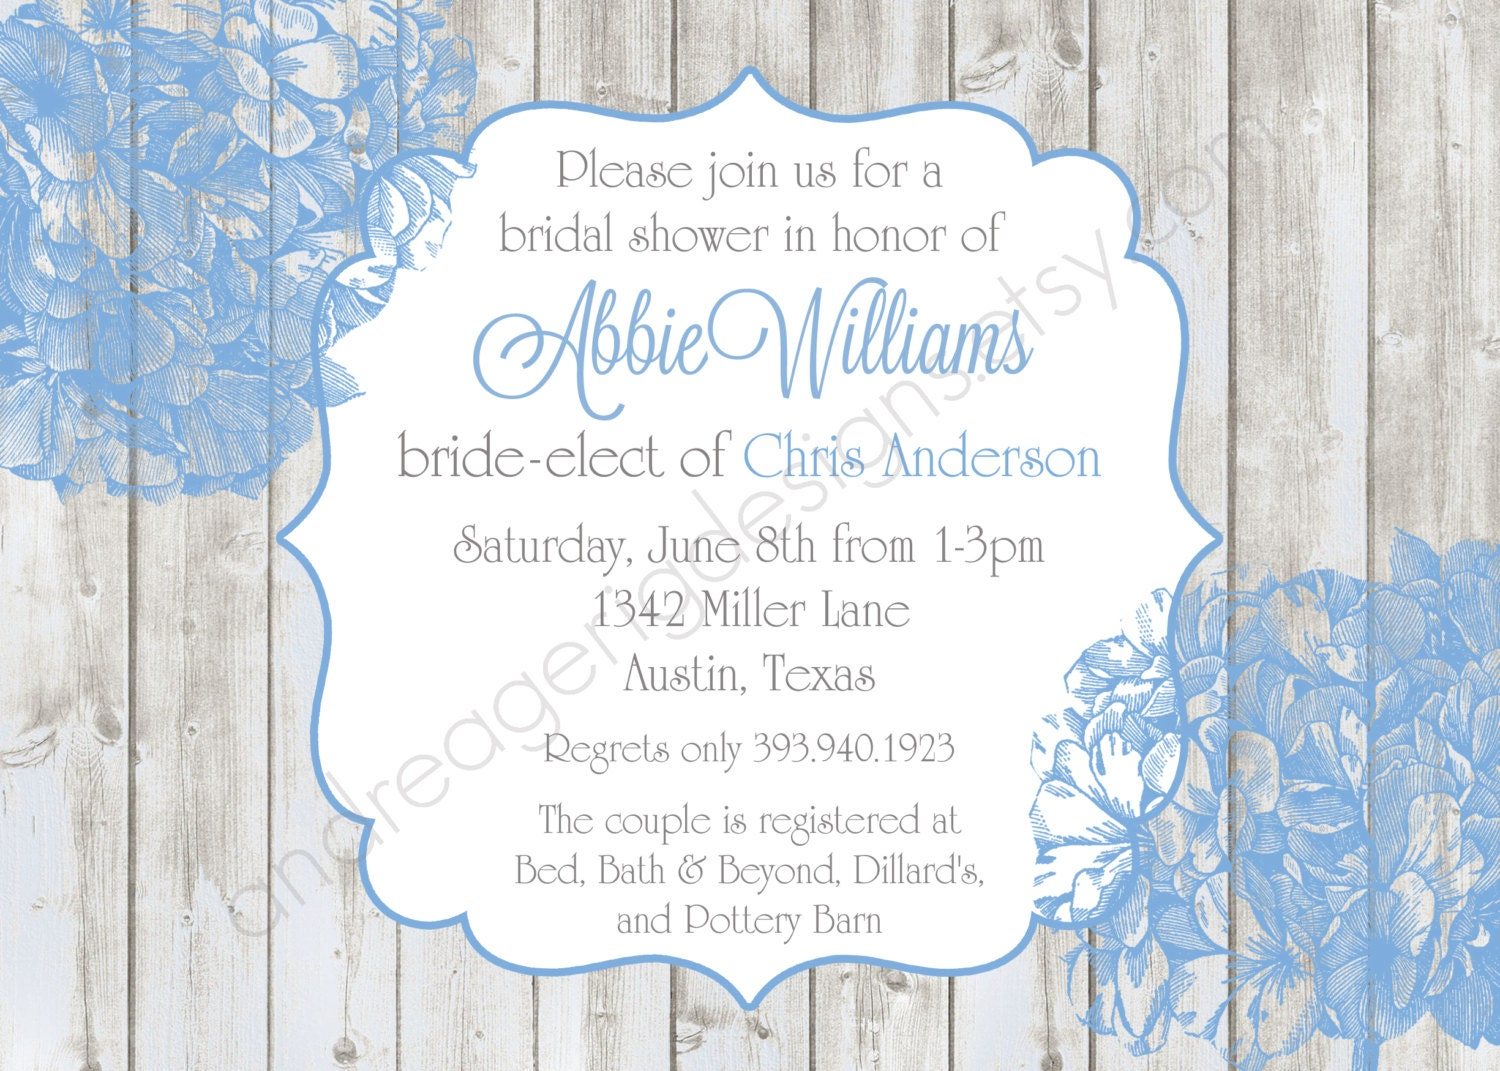 Bridal Shower Invitations Free Bridal Shower Invitation Templates – Bridal Shower Invitation Templates for Word